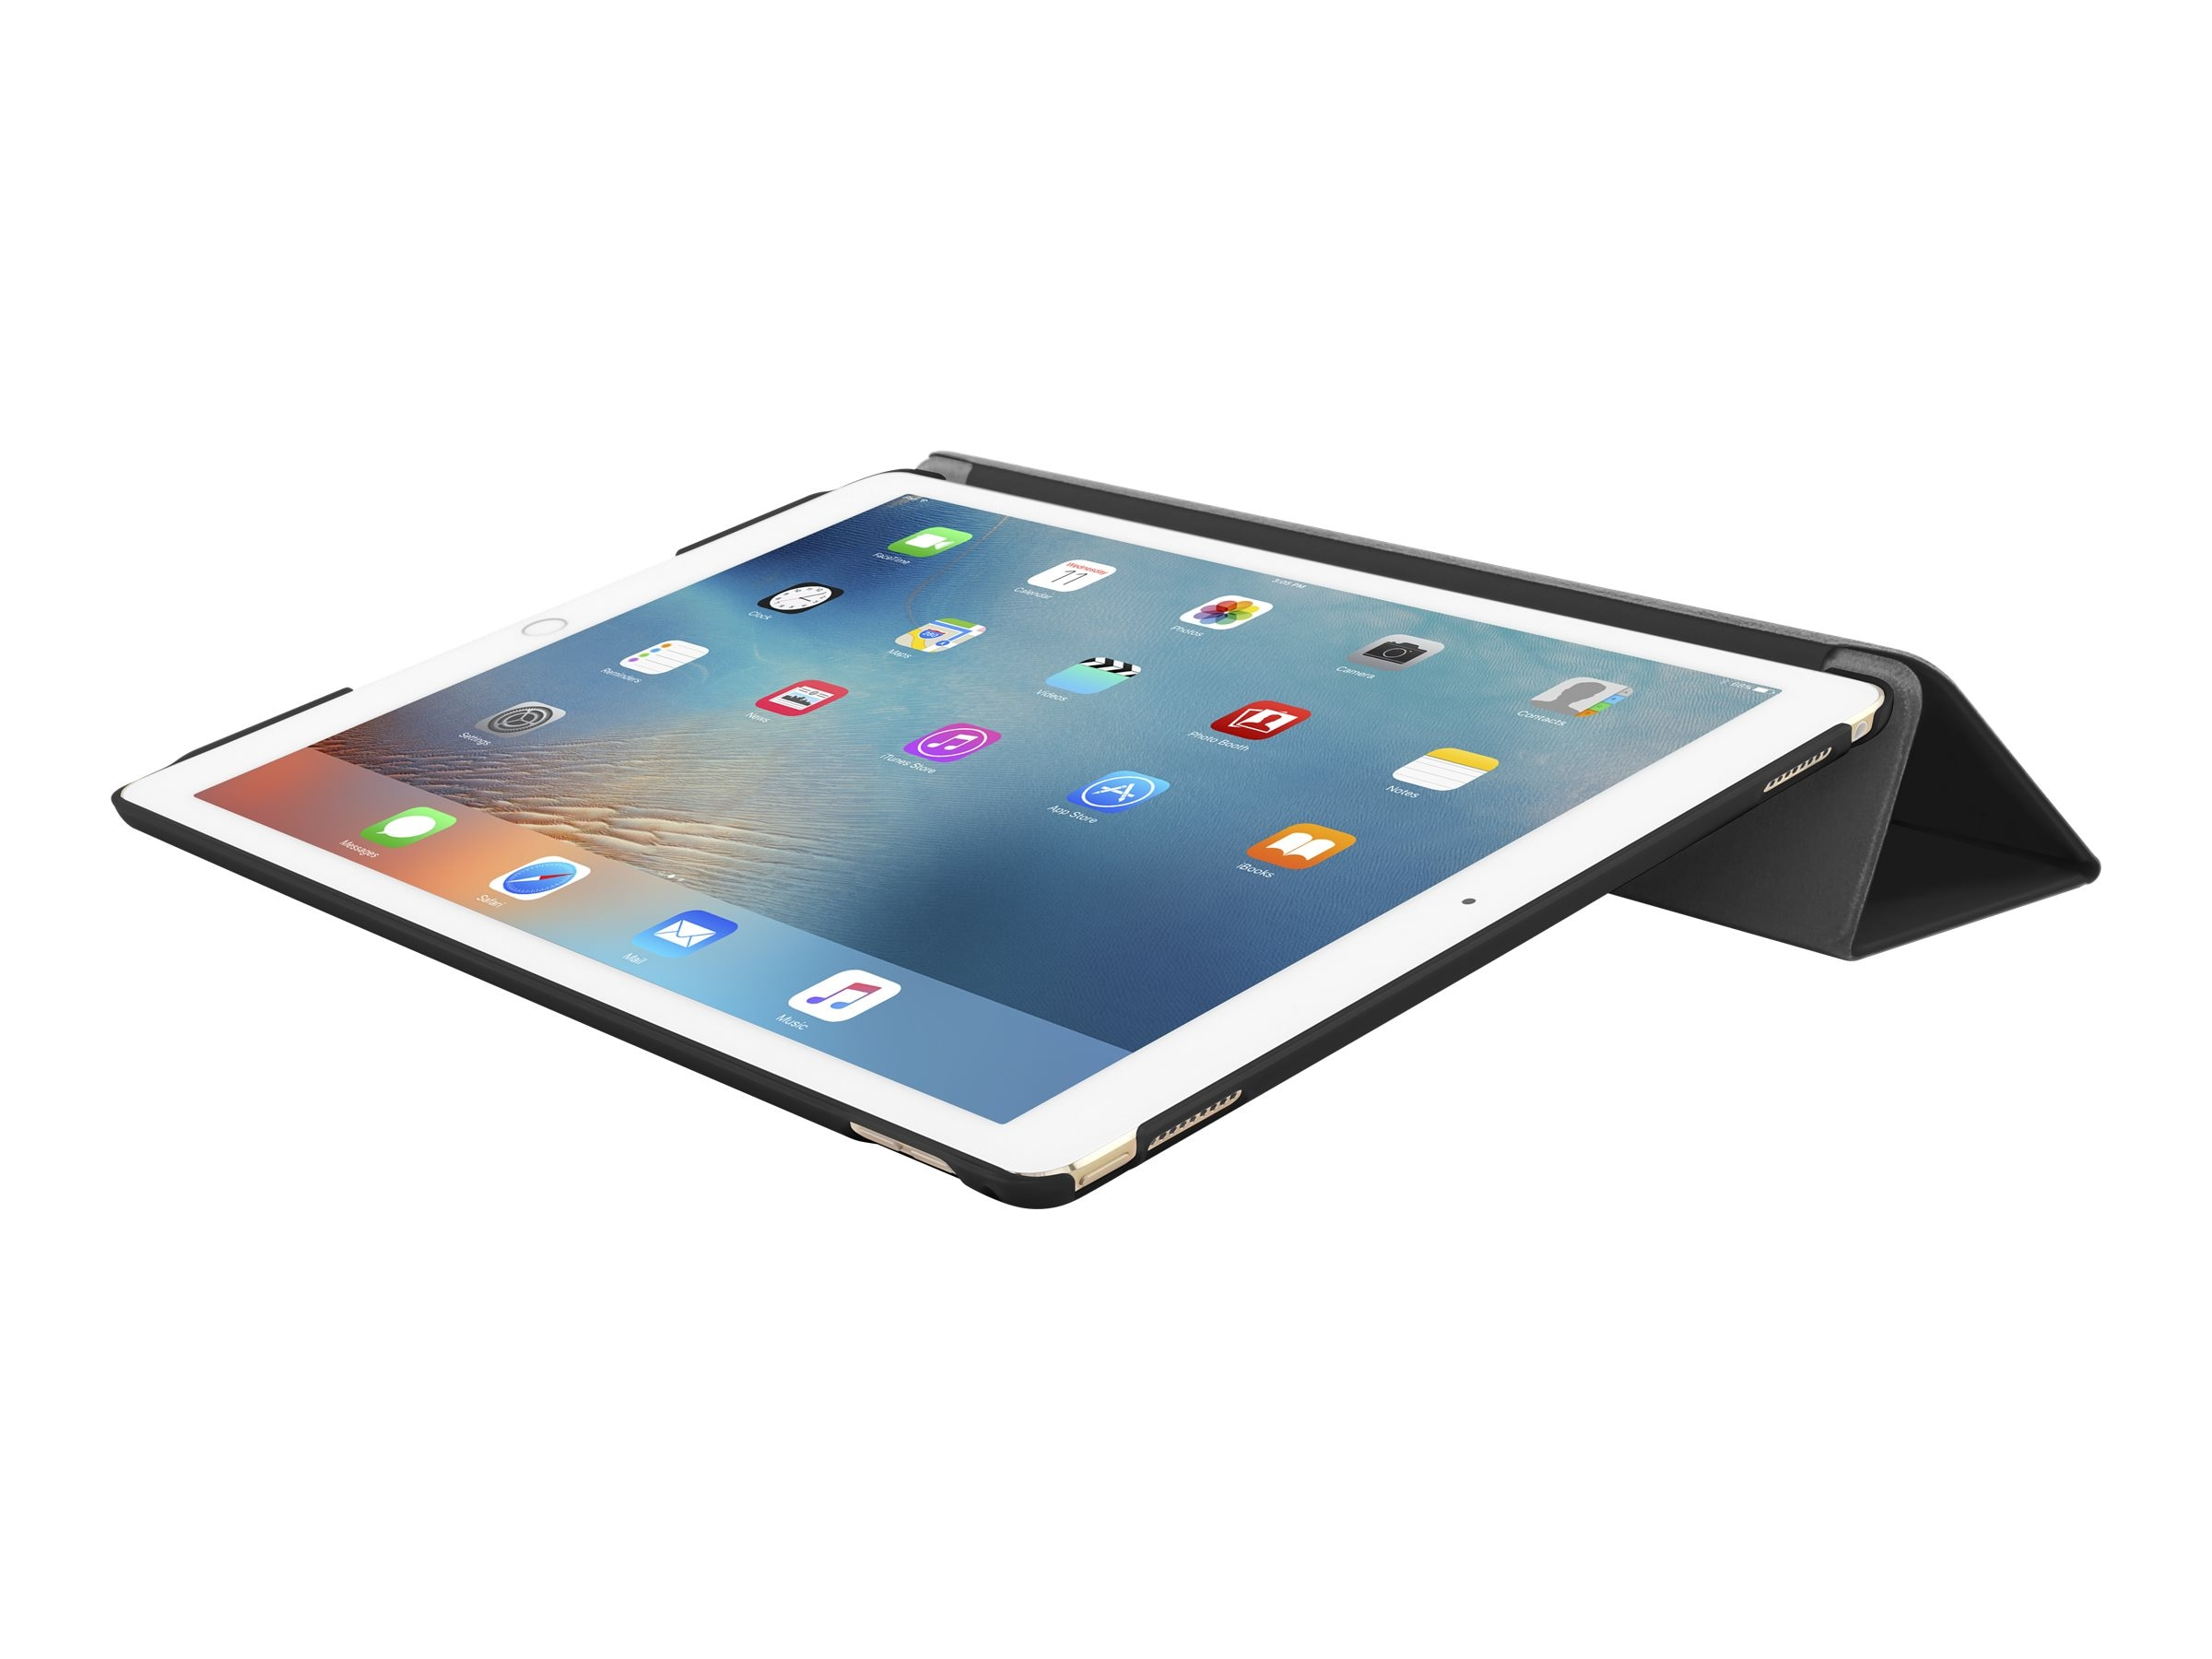 Incipio Feather Ultra-Thin Snap-On Case for iPad Pro 12.9, Black, IPD-287-BLK